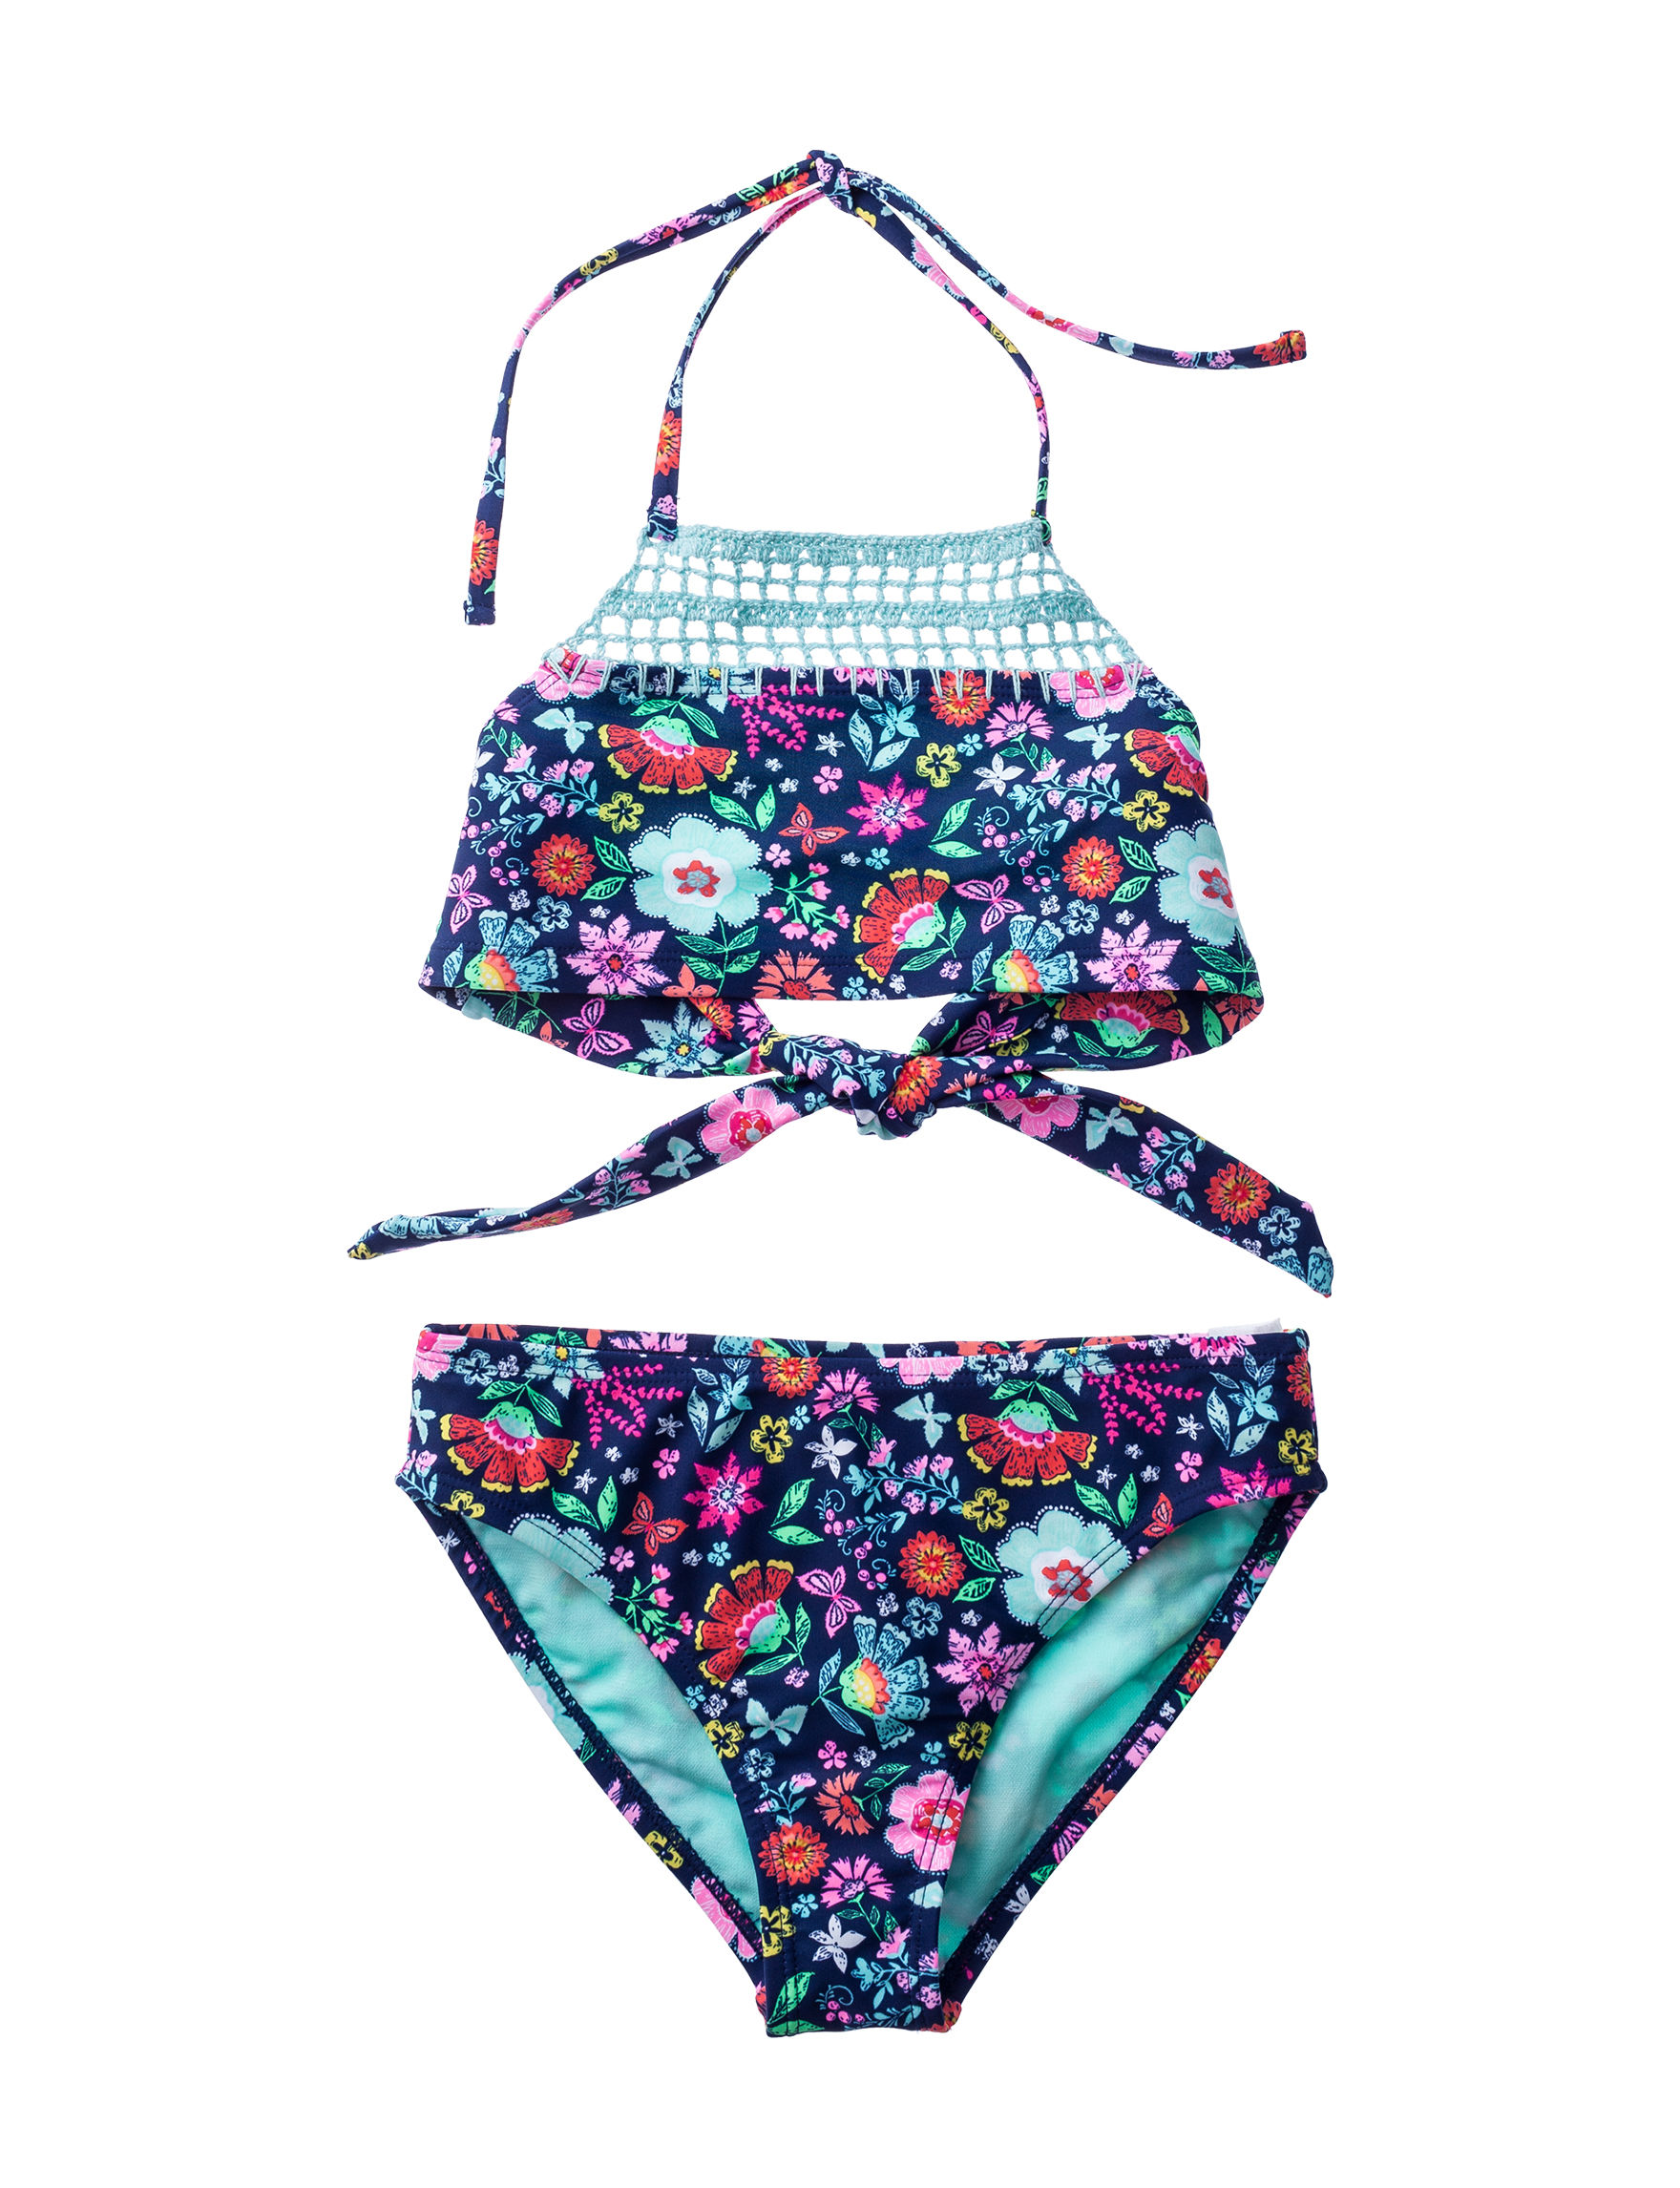 Angel Beach Navy Floral Swimsuit Sets Halter